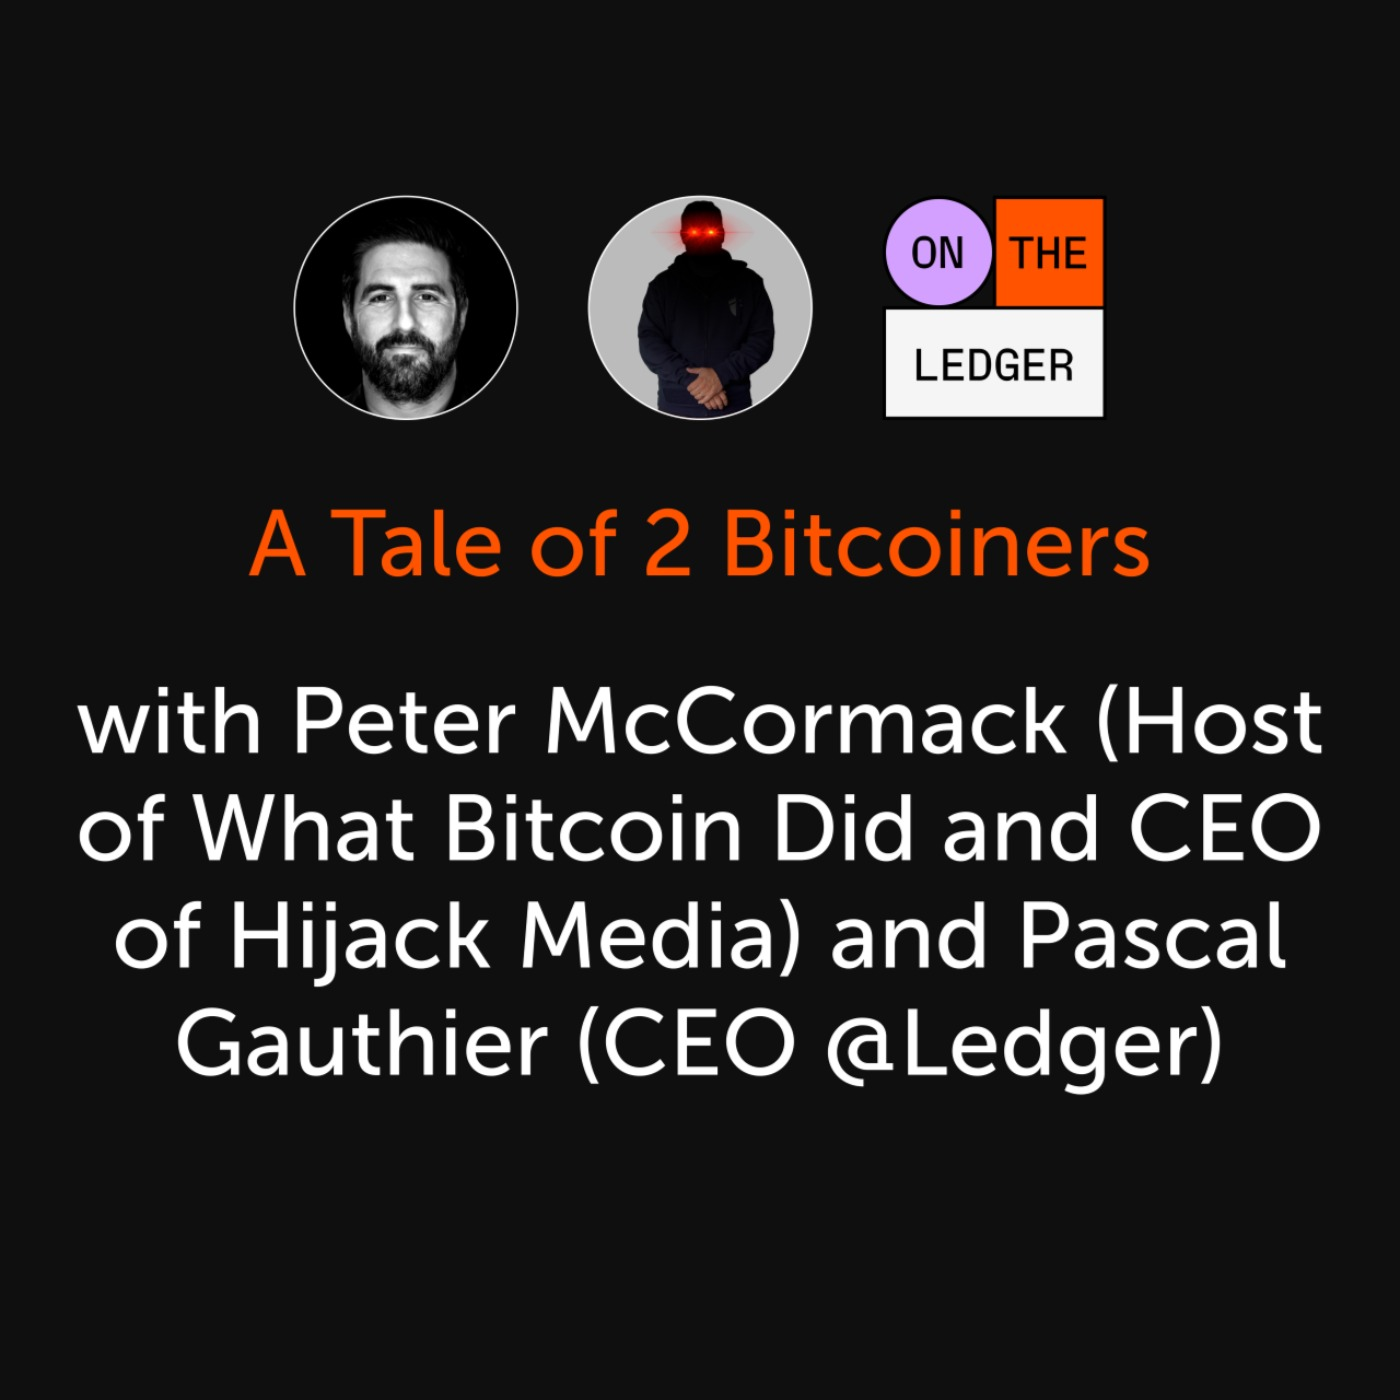 #7 A Tale of 2 Bitcoiners w/ Peter McCormack